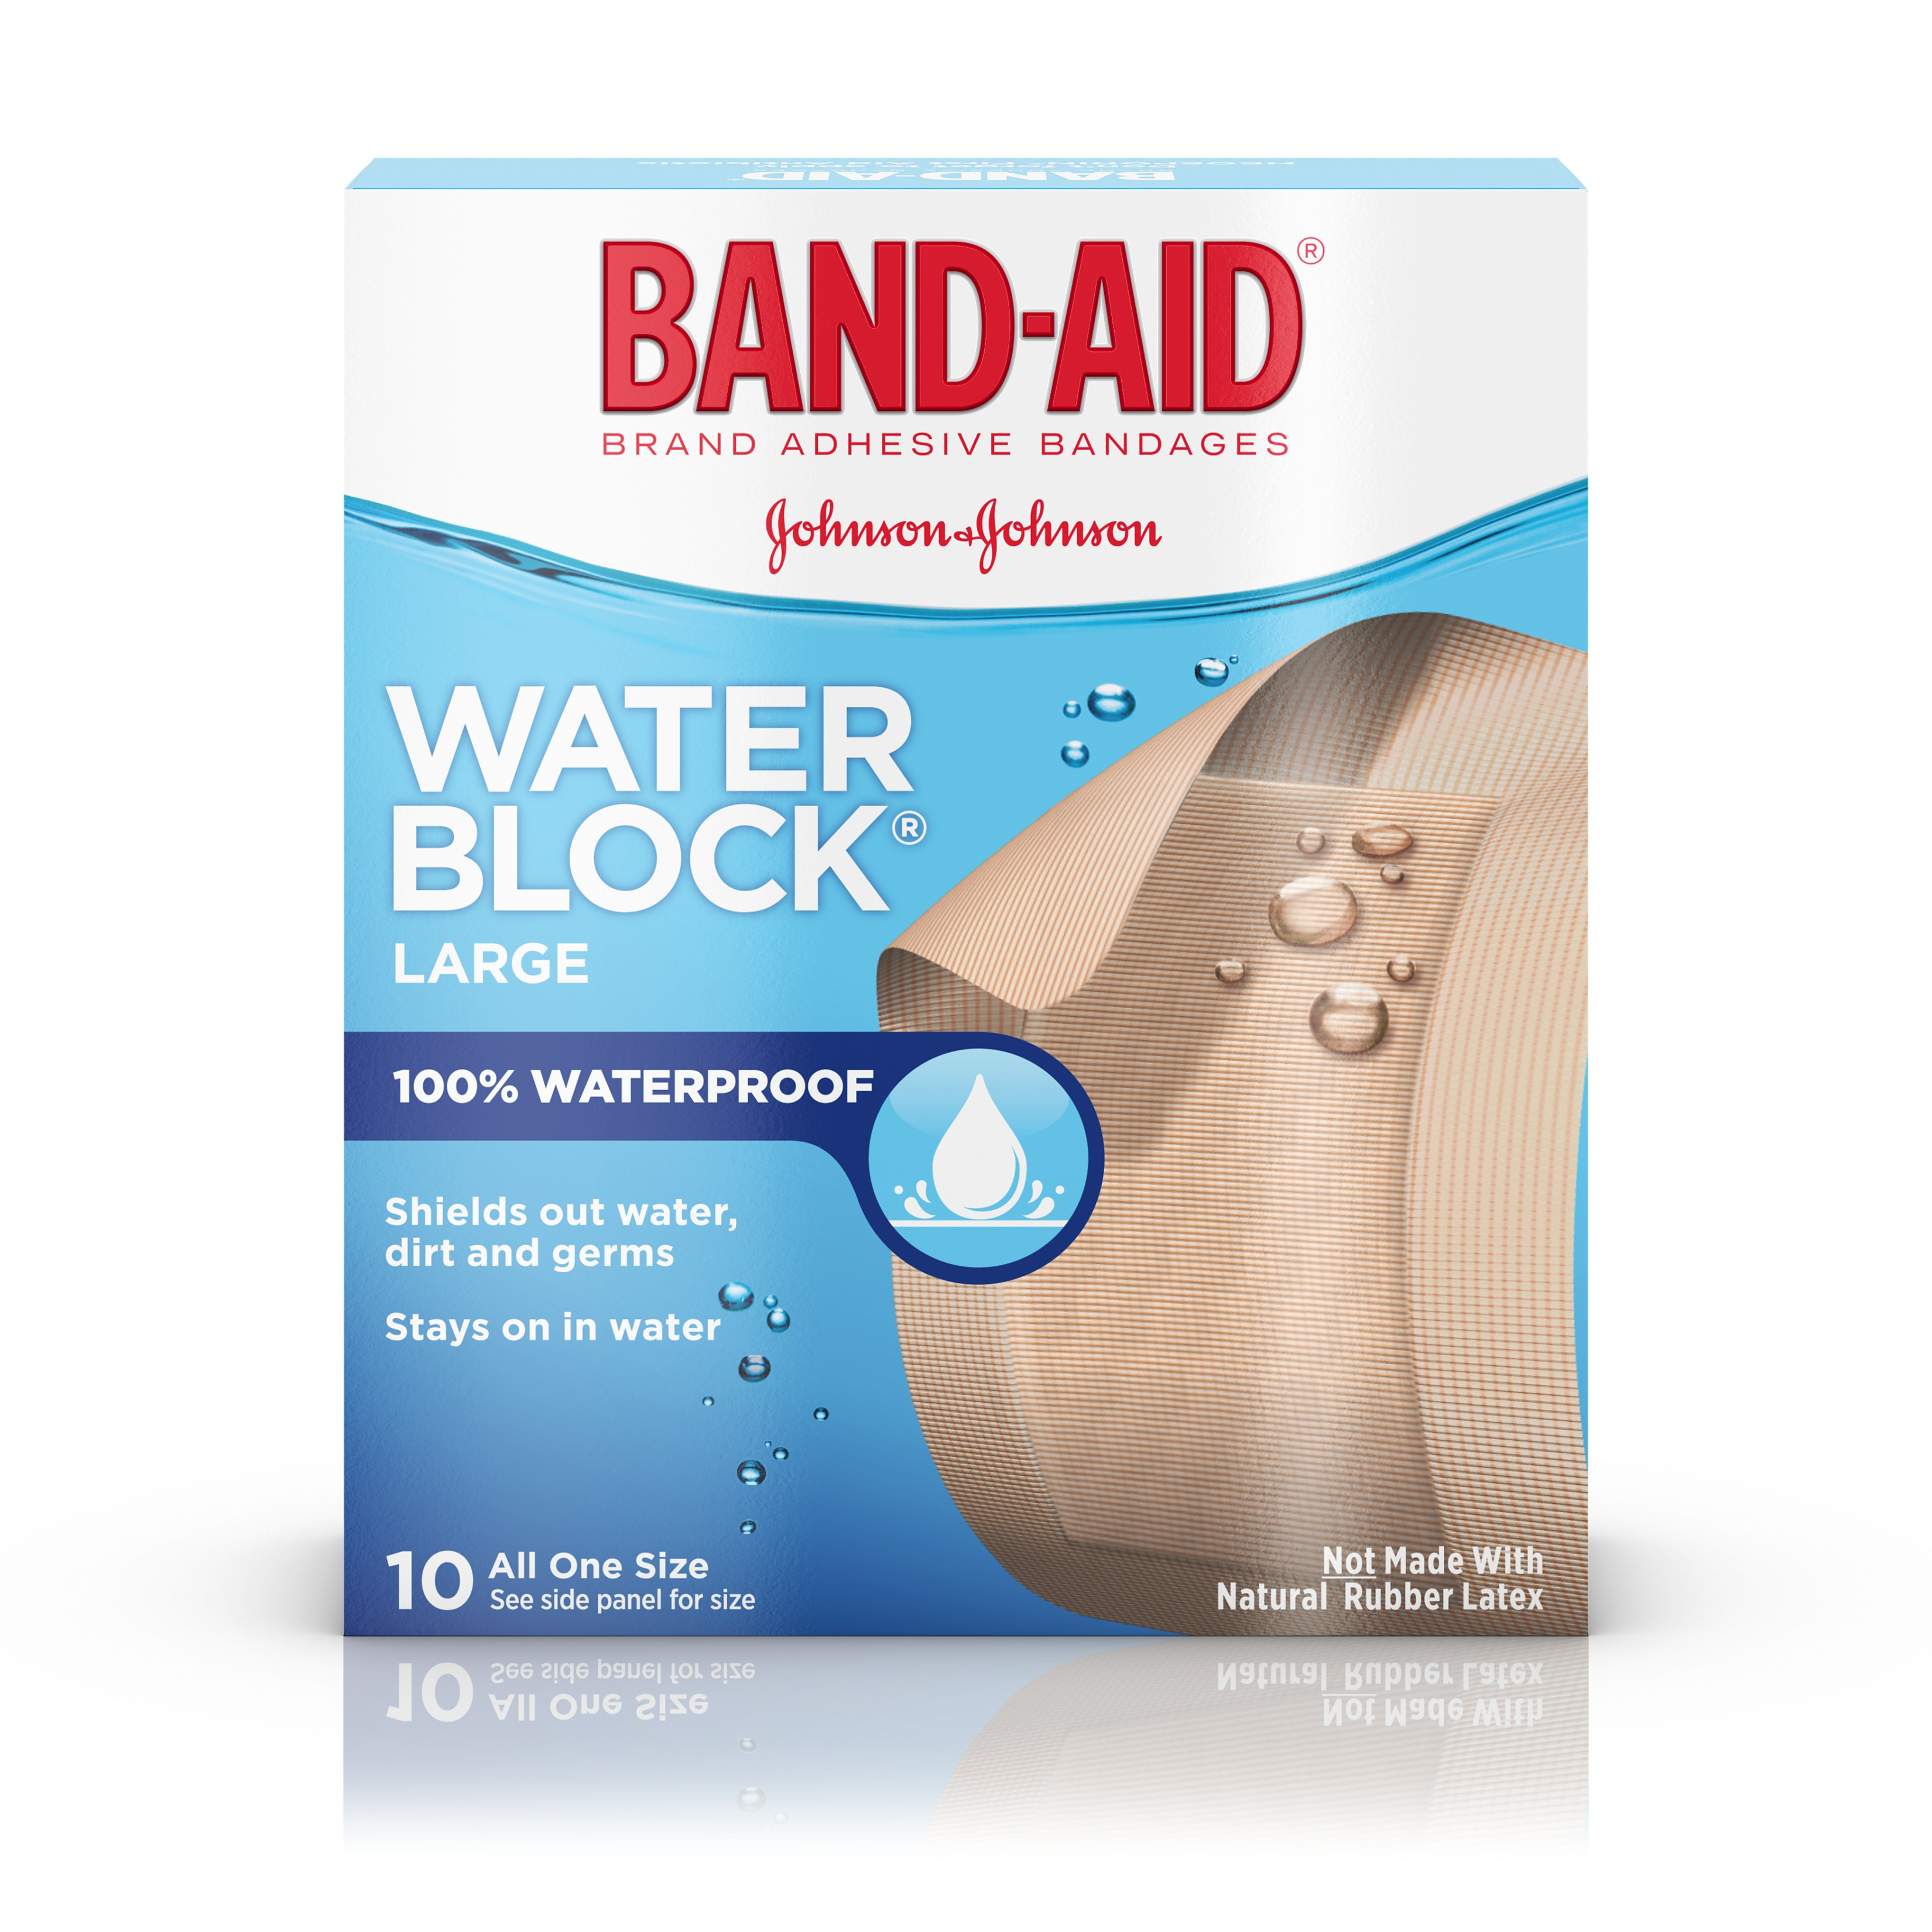 100% Waterproof Large Band-Aid Brand Water Block Plus Adhesive Bandages, 10 ct